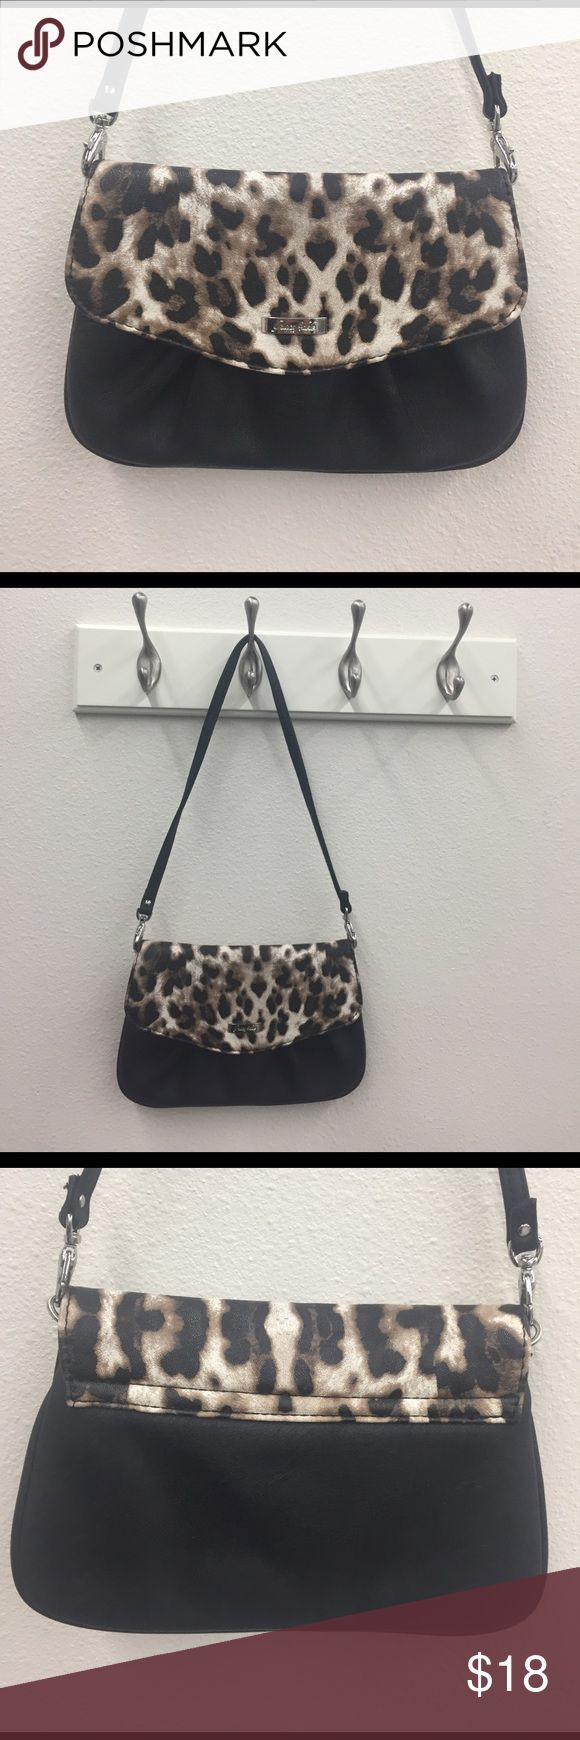 "Grace Adele Clutch Grace Adele ""Jane""-Leopard Clutch. Versatile envelope w/ subtle ruching. It has a detachable strap. Used a couple times. Perfect for going out. Bundle this with the Blue clutch & now you have choices:) Grace Adele Bags Clutches & Wristlets"